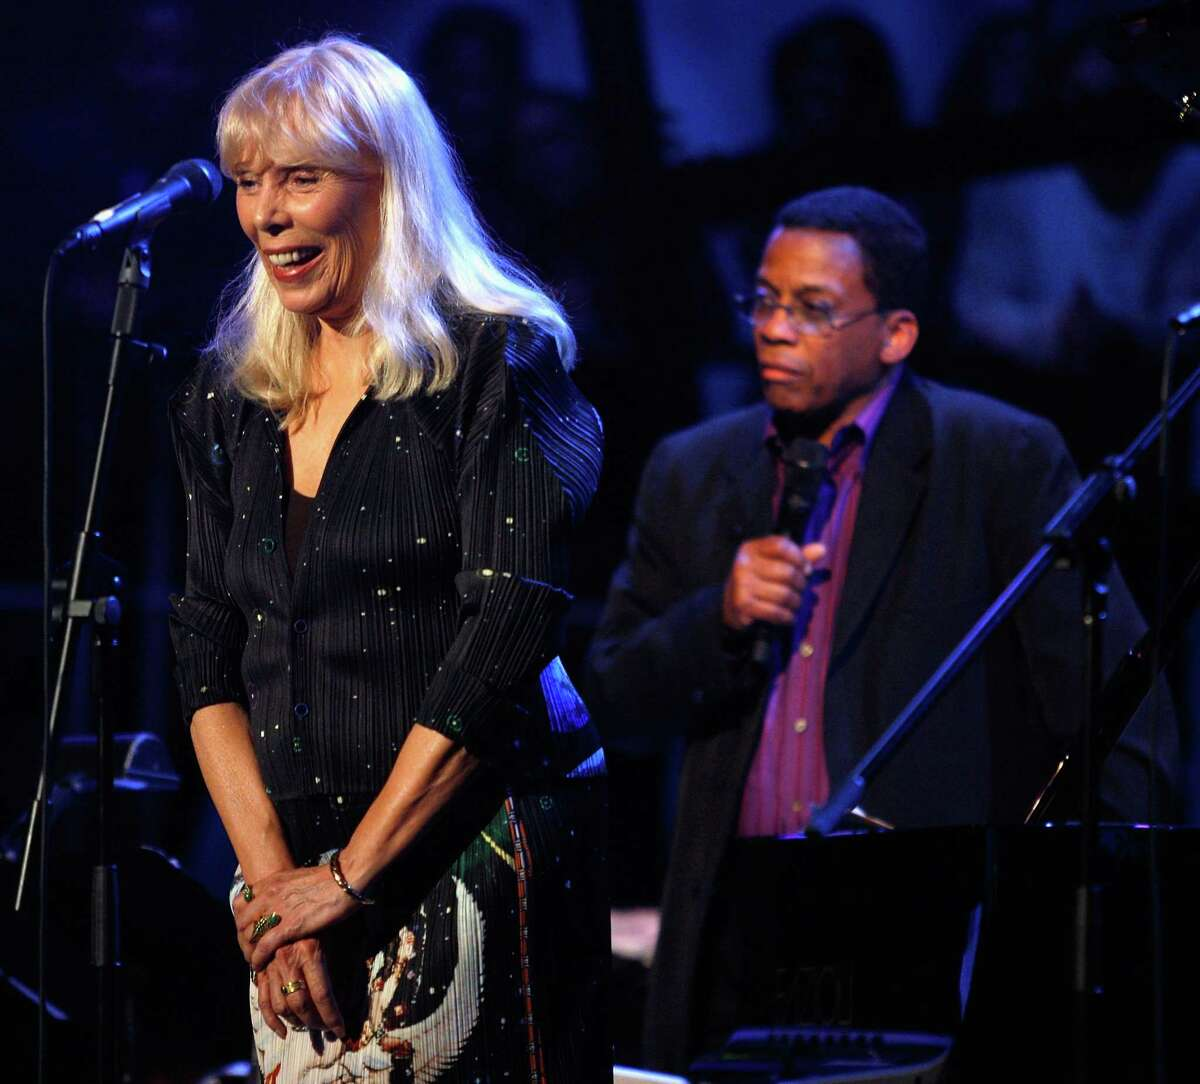 This March 20, 2008 file photo shows Joni Mitchell, left, and Herbie Hancock perform as part of Nissan Live Sets on Yahoo! Music in Los Angeles.